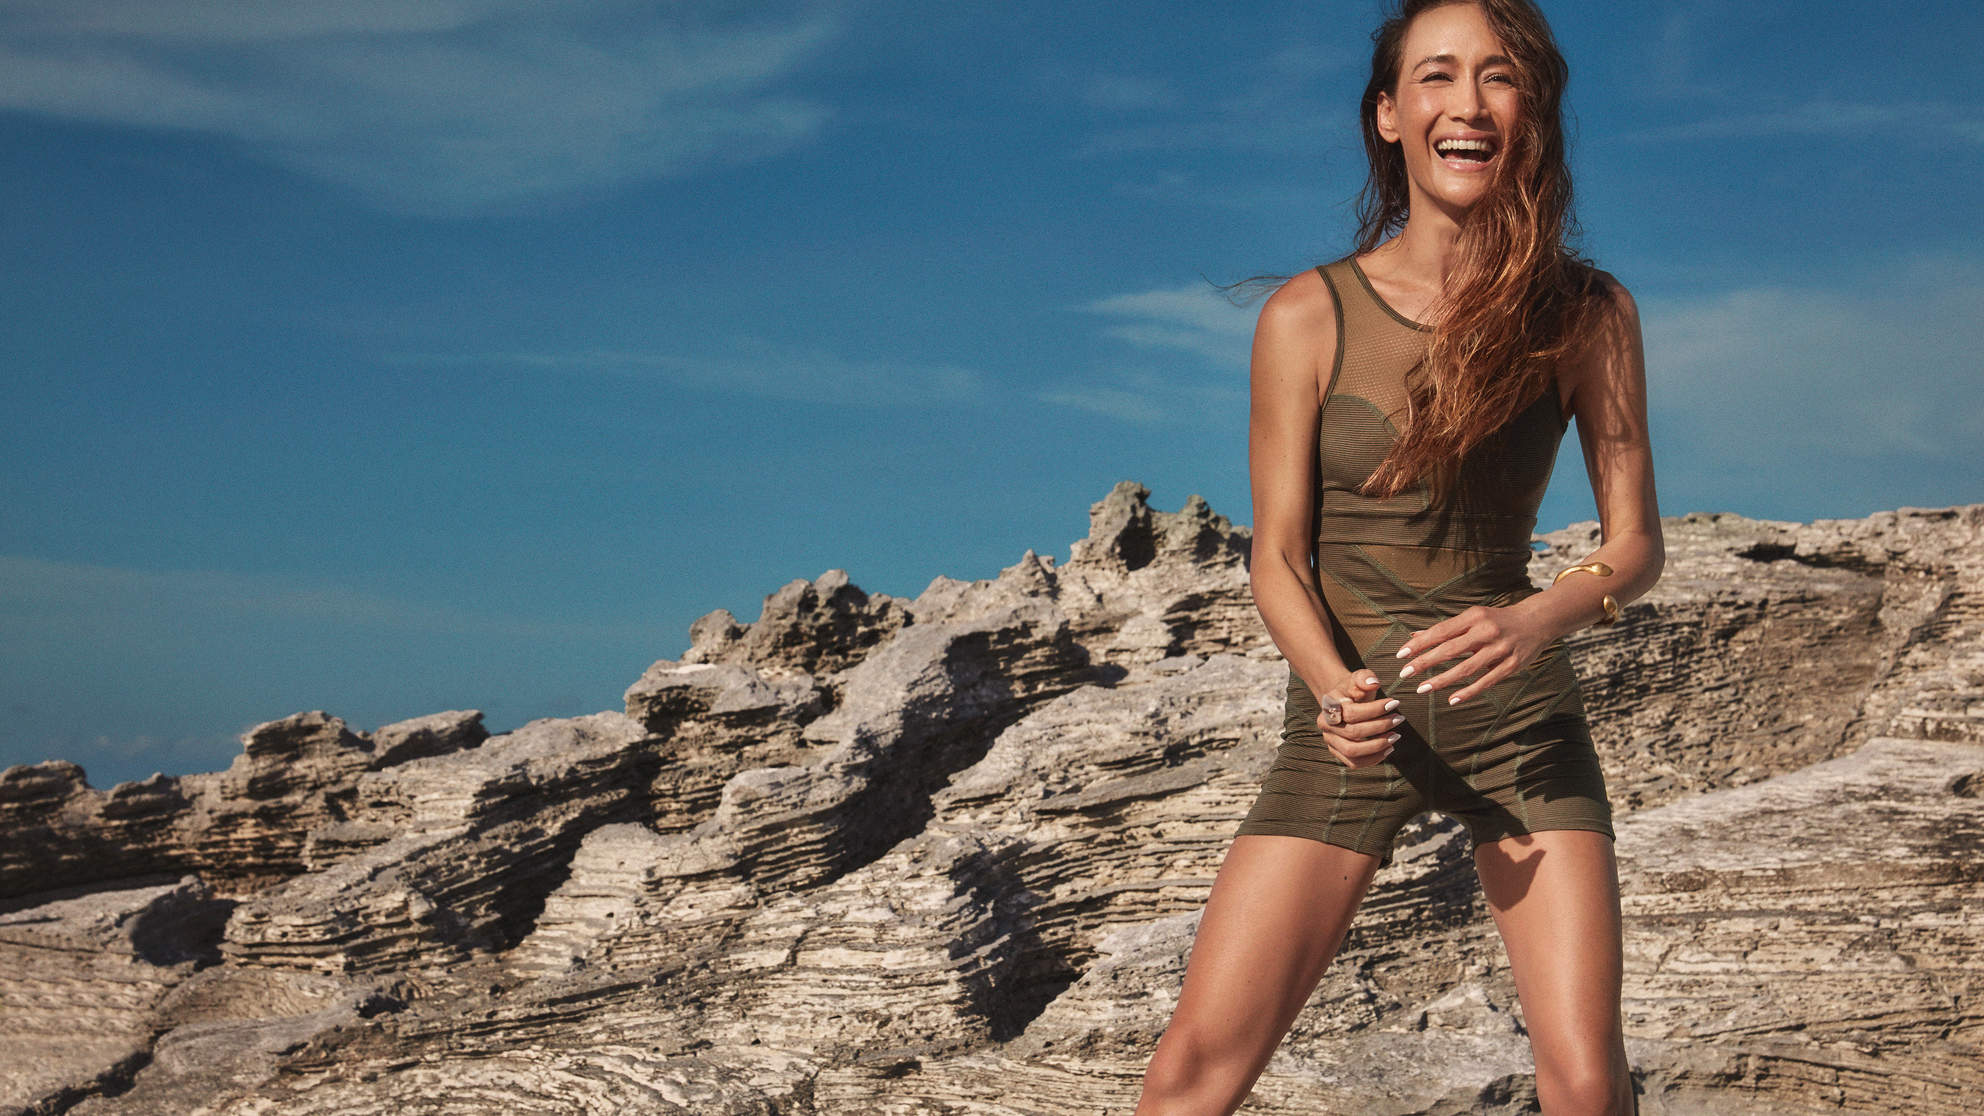 This New Athleisure Line by Actress Maggie Q Is Made From Recycled Plastic, but You Would Never Know It